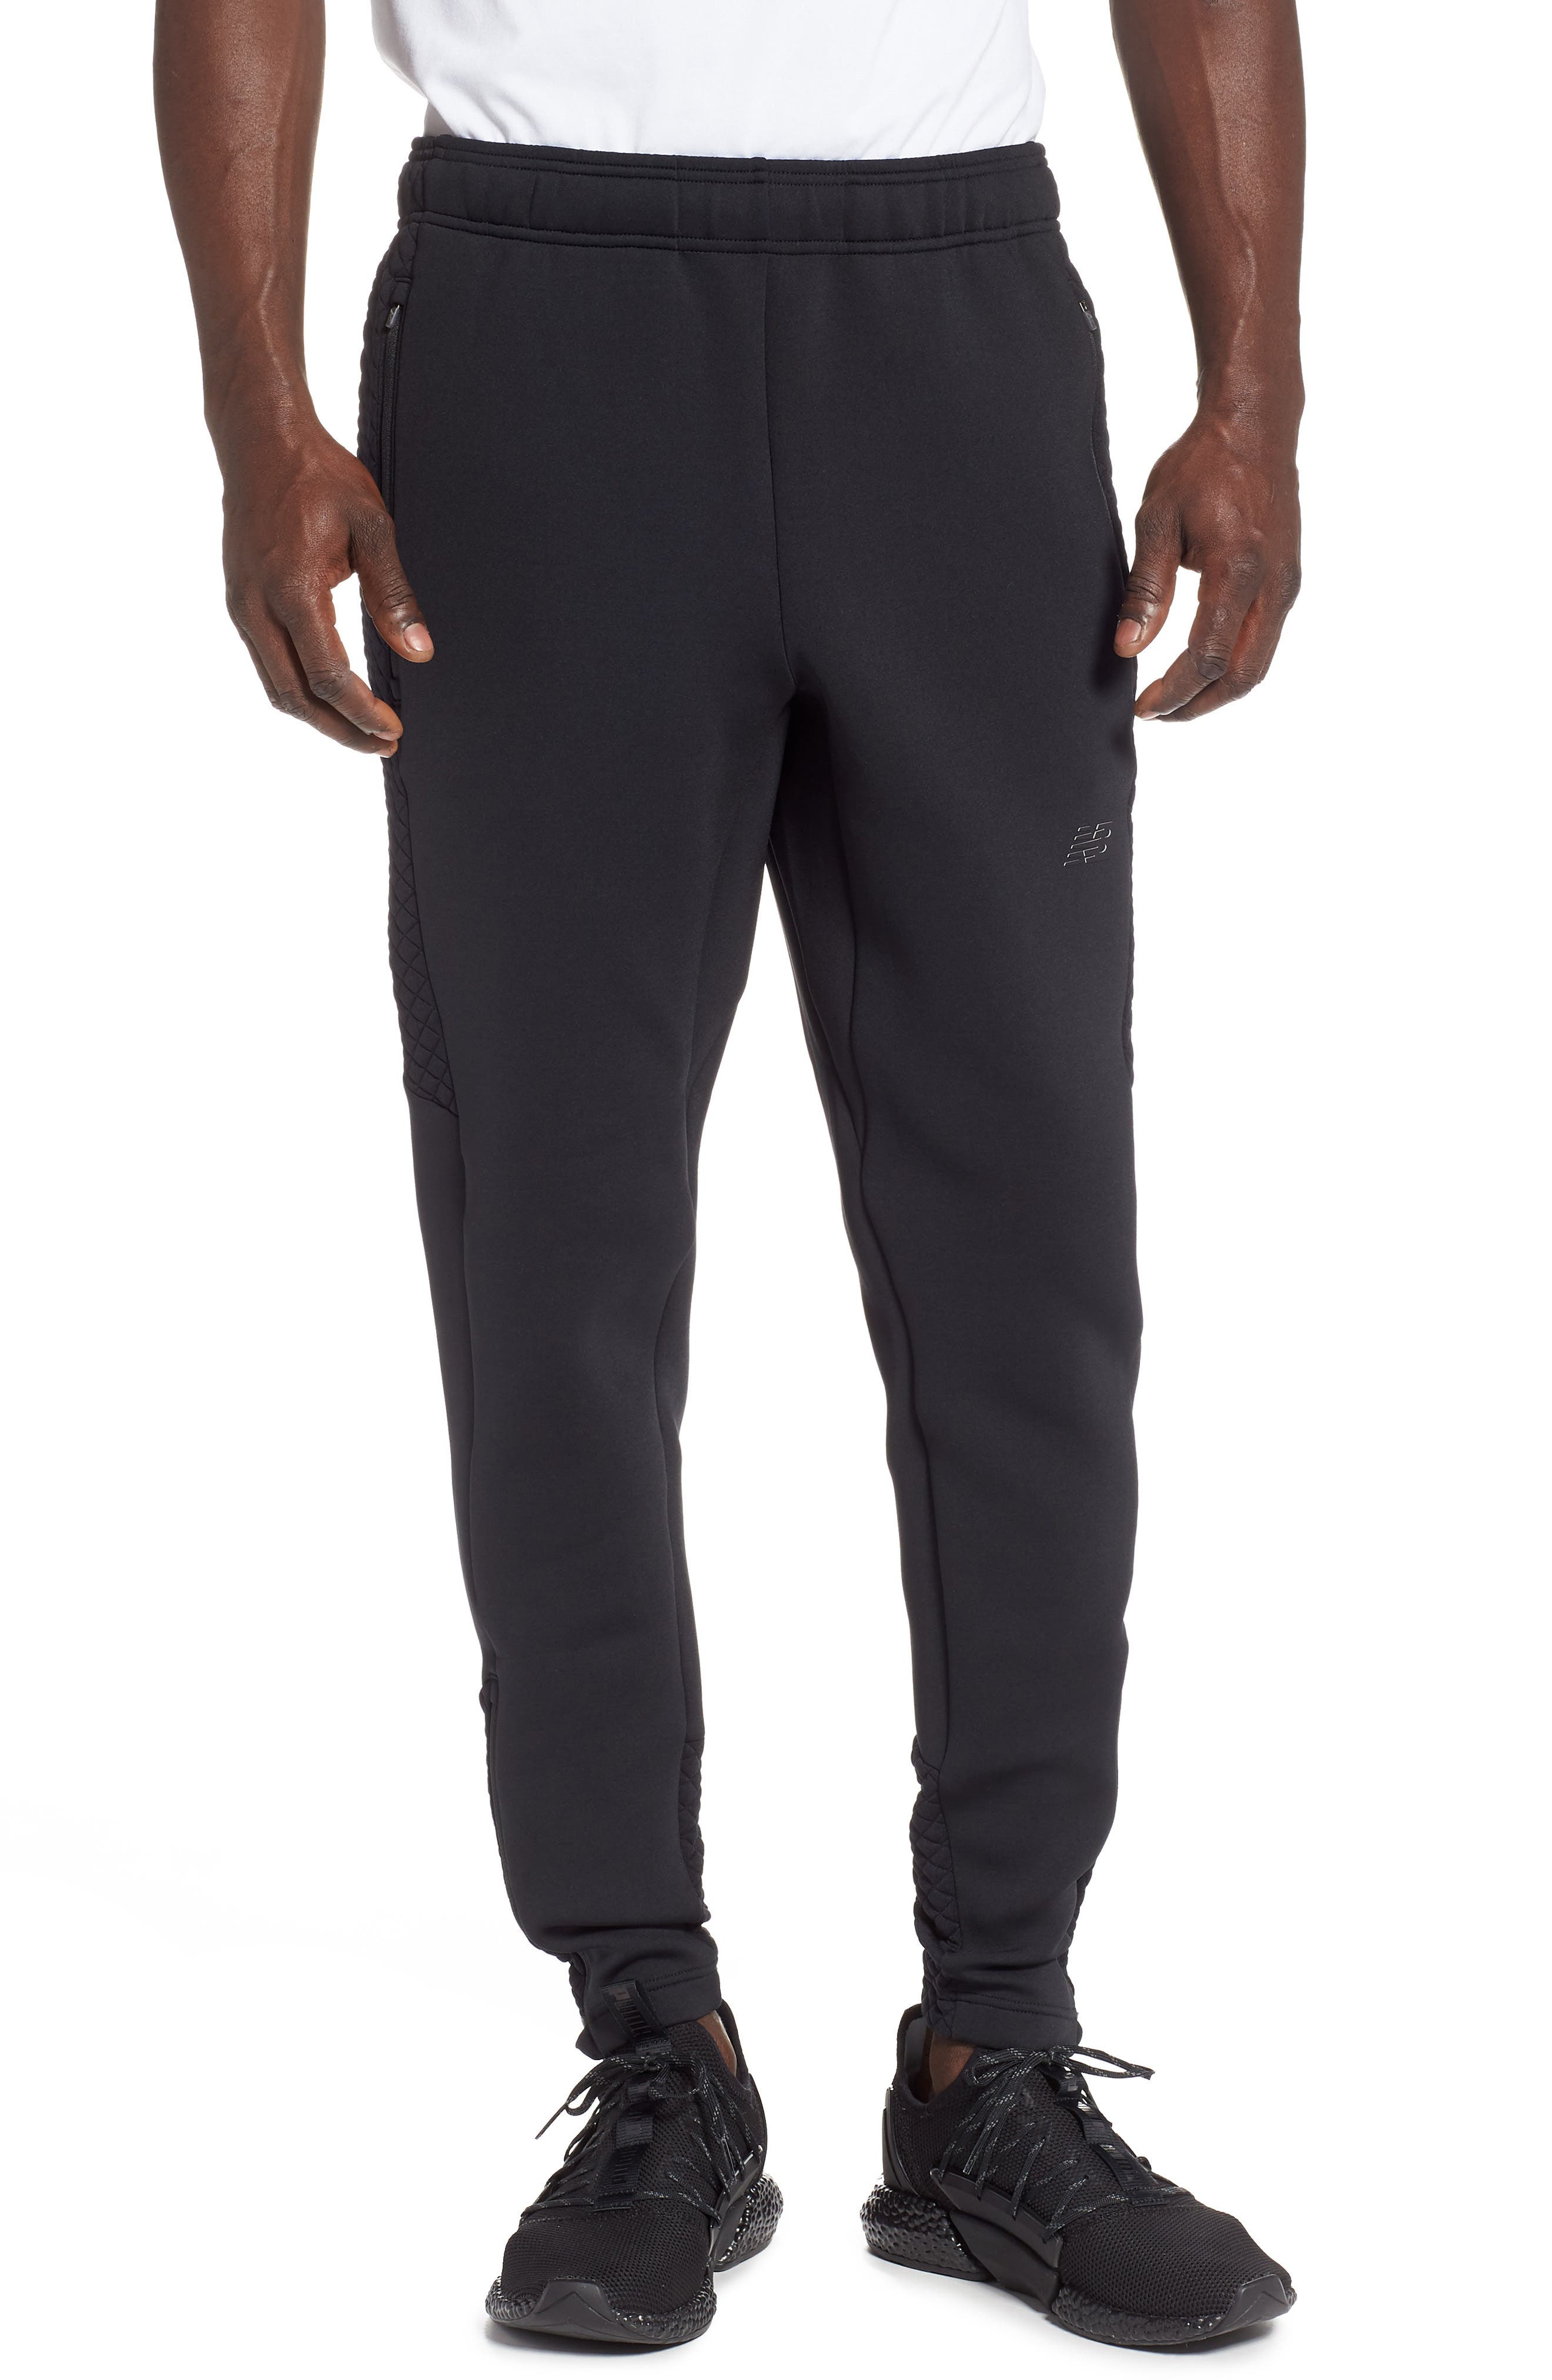 New Balance Heat Loft Pants, Black